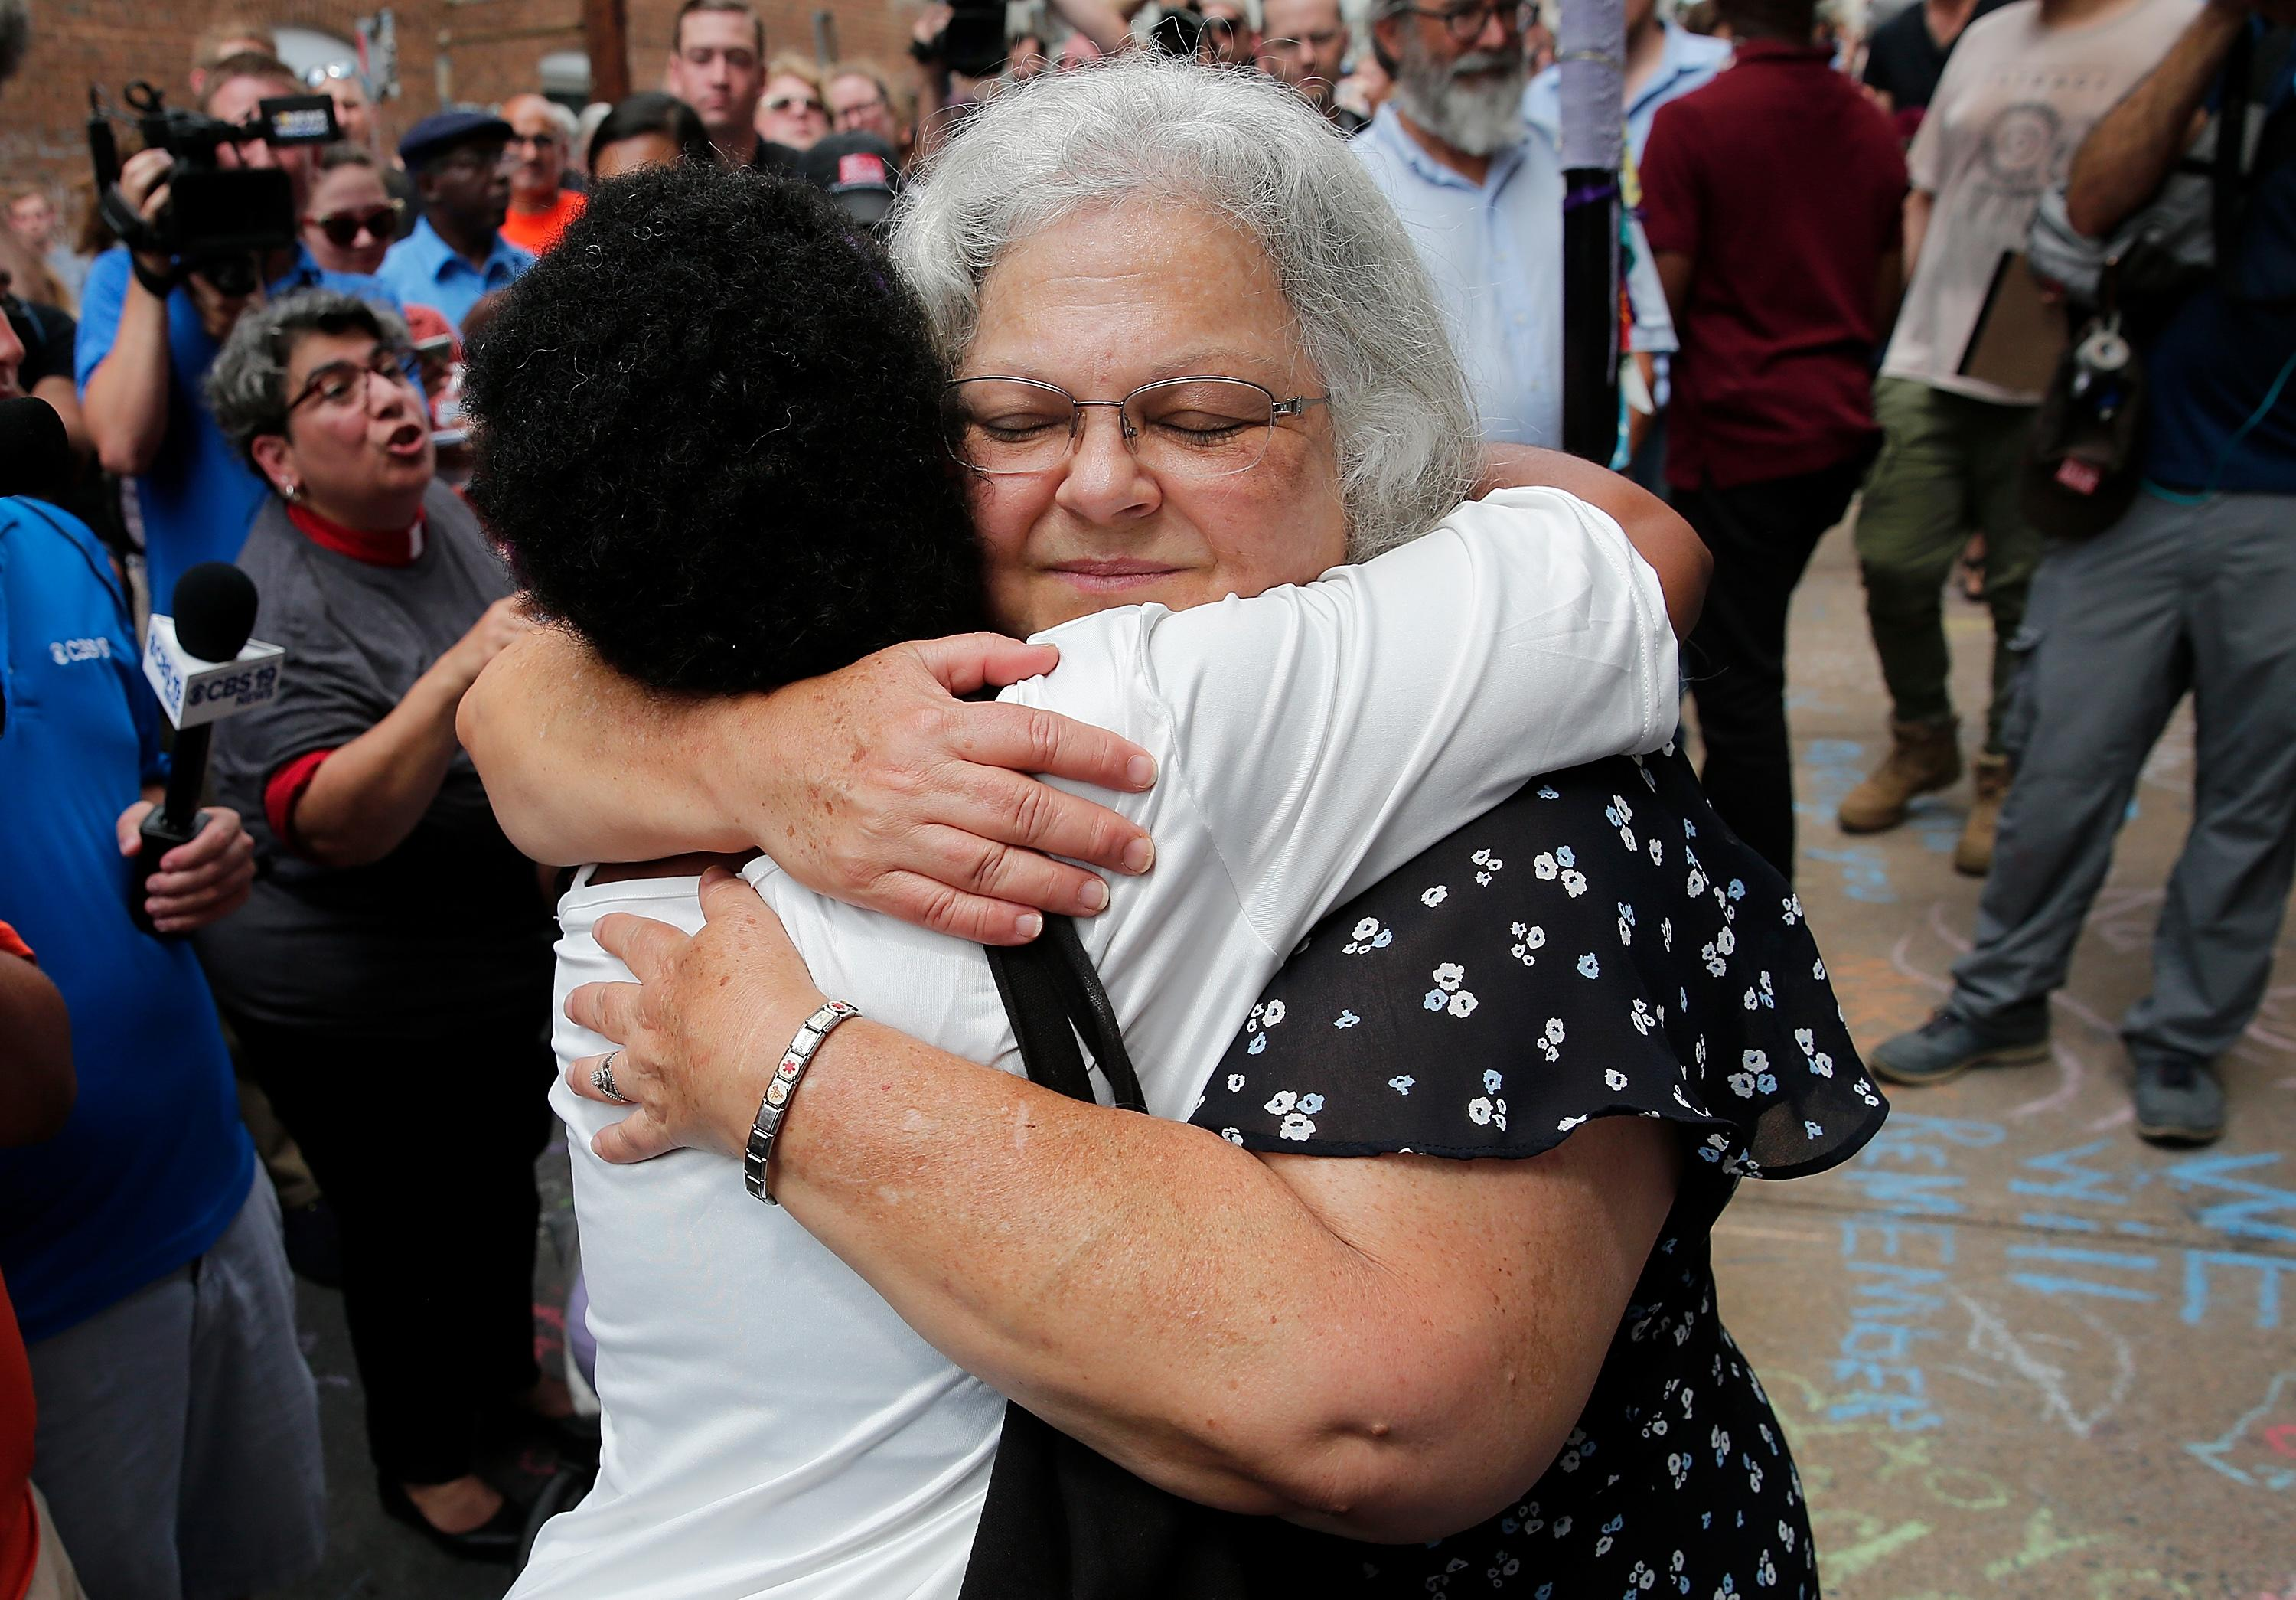 """<p>Susan Bro (R), mother of Heather Heyer, hugs a young woman near a makeshift memorial for her daughter Heather who was killed one year ago during a deadly clash, August 12, 2018 in Charlottesville, Virginia. Charlottesville has been declared in a state of emergency by Virginia Gov. Ralph Northam as the city braces for the one year anniversary of the deadly clash between white supremacist forces and counter protesters over the potential removal of Confederate statues of Robert E. Lee and Jackson. A """"Unite the Right"""" rally featuring some of the same groups is planned for today in Washington, DC. (Photo: Win McNamee/Getty Images) </p>"""